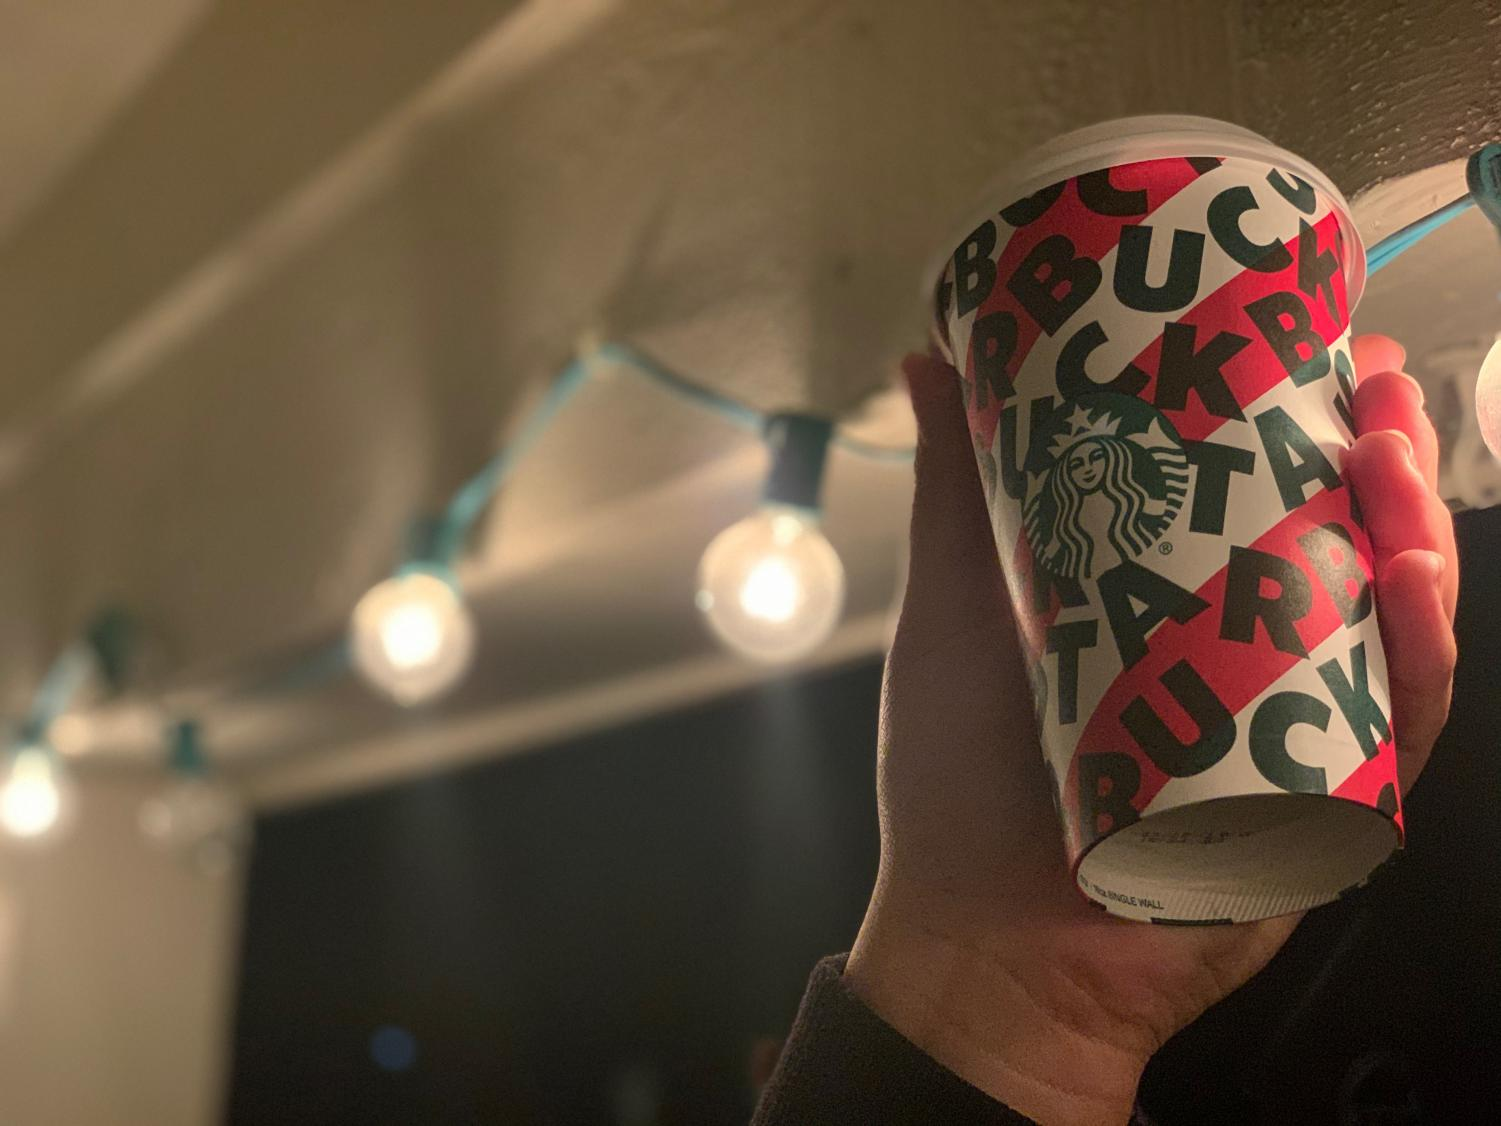 One of Starbucks' 2019 holiday cup designs. The cup controversy started in 2015, but the brand faces yearly backlash for making plain holiday cups.